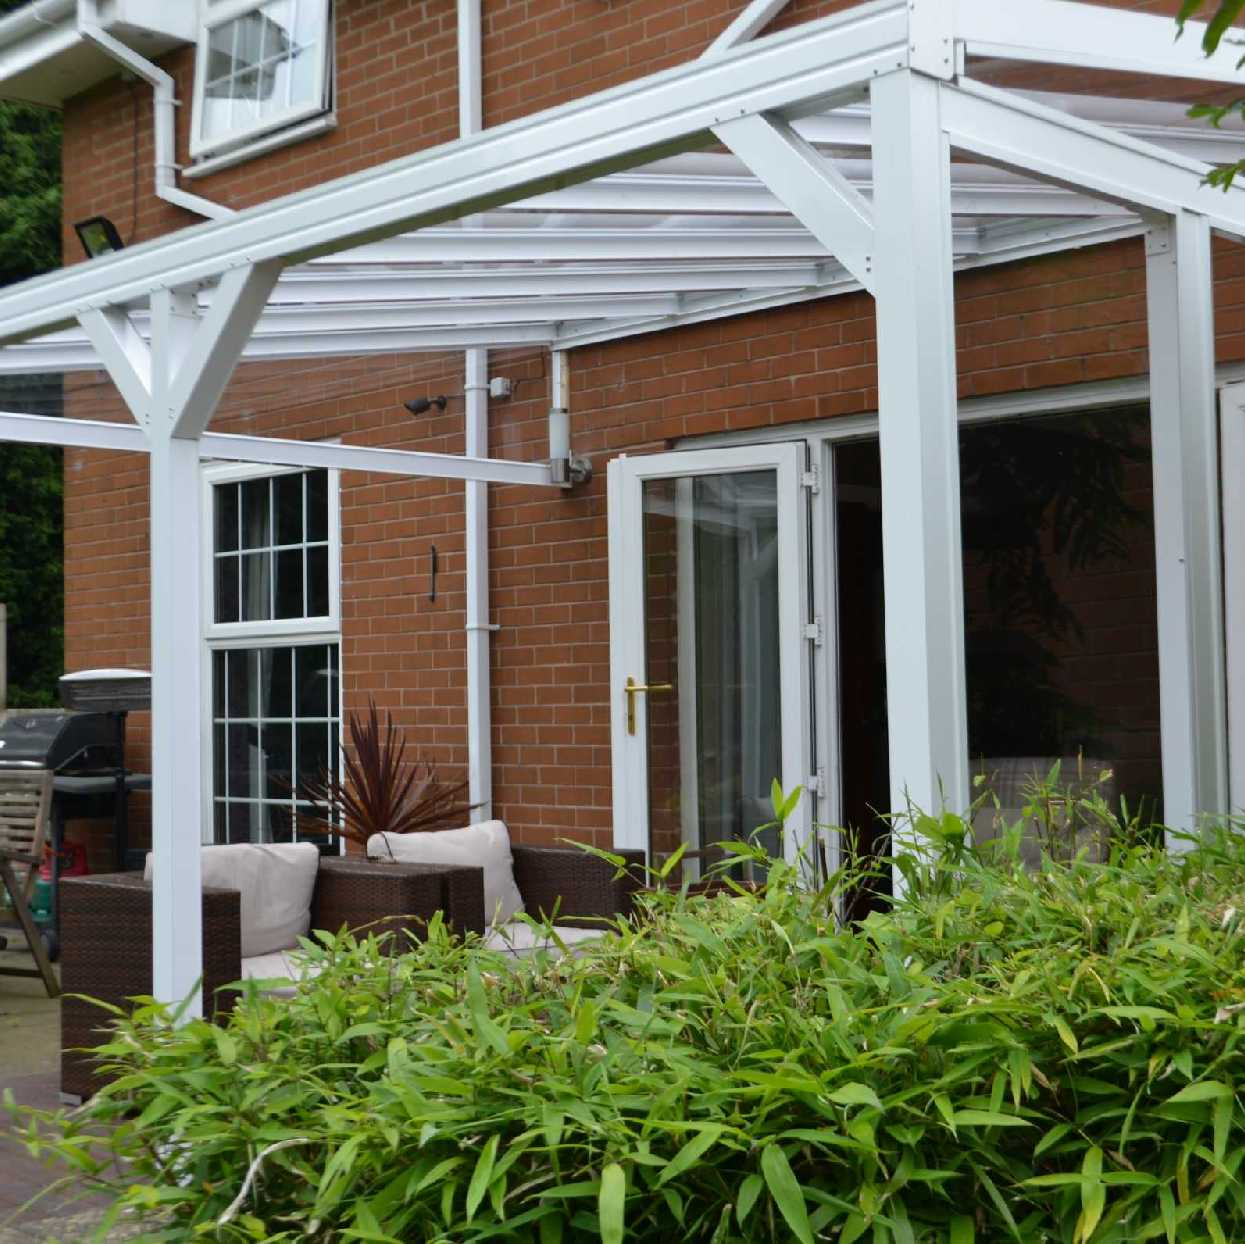 Omega Smart White Lean-To Canopy with 6mm Glass Clear Plate Polycarbonate Glazing - 5.6m (W) x 3.0m (P), (3) Supporting Posts from Omega Build